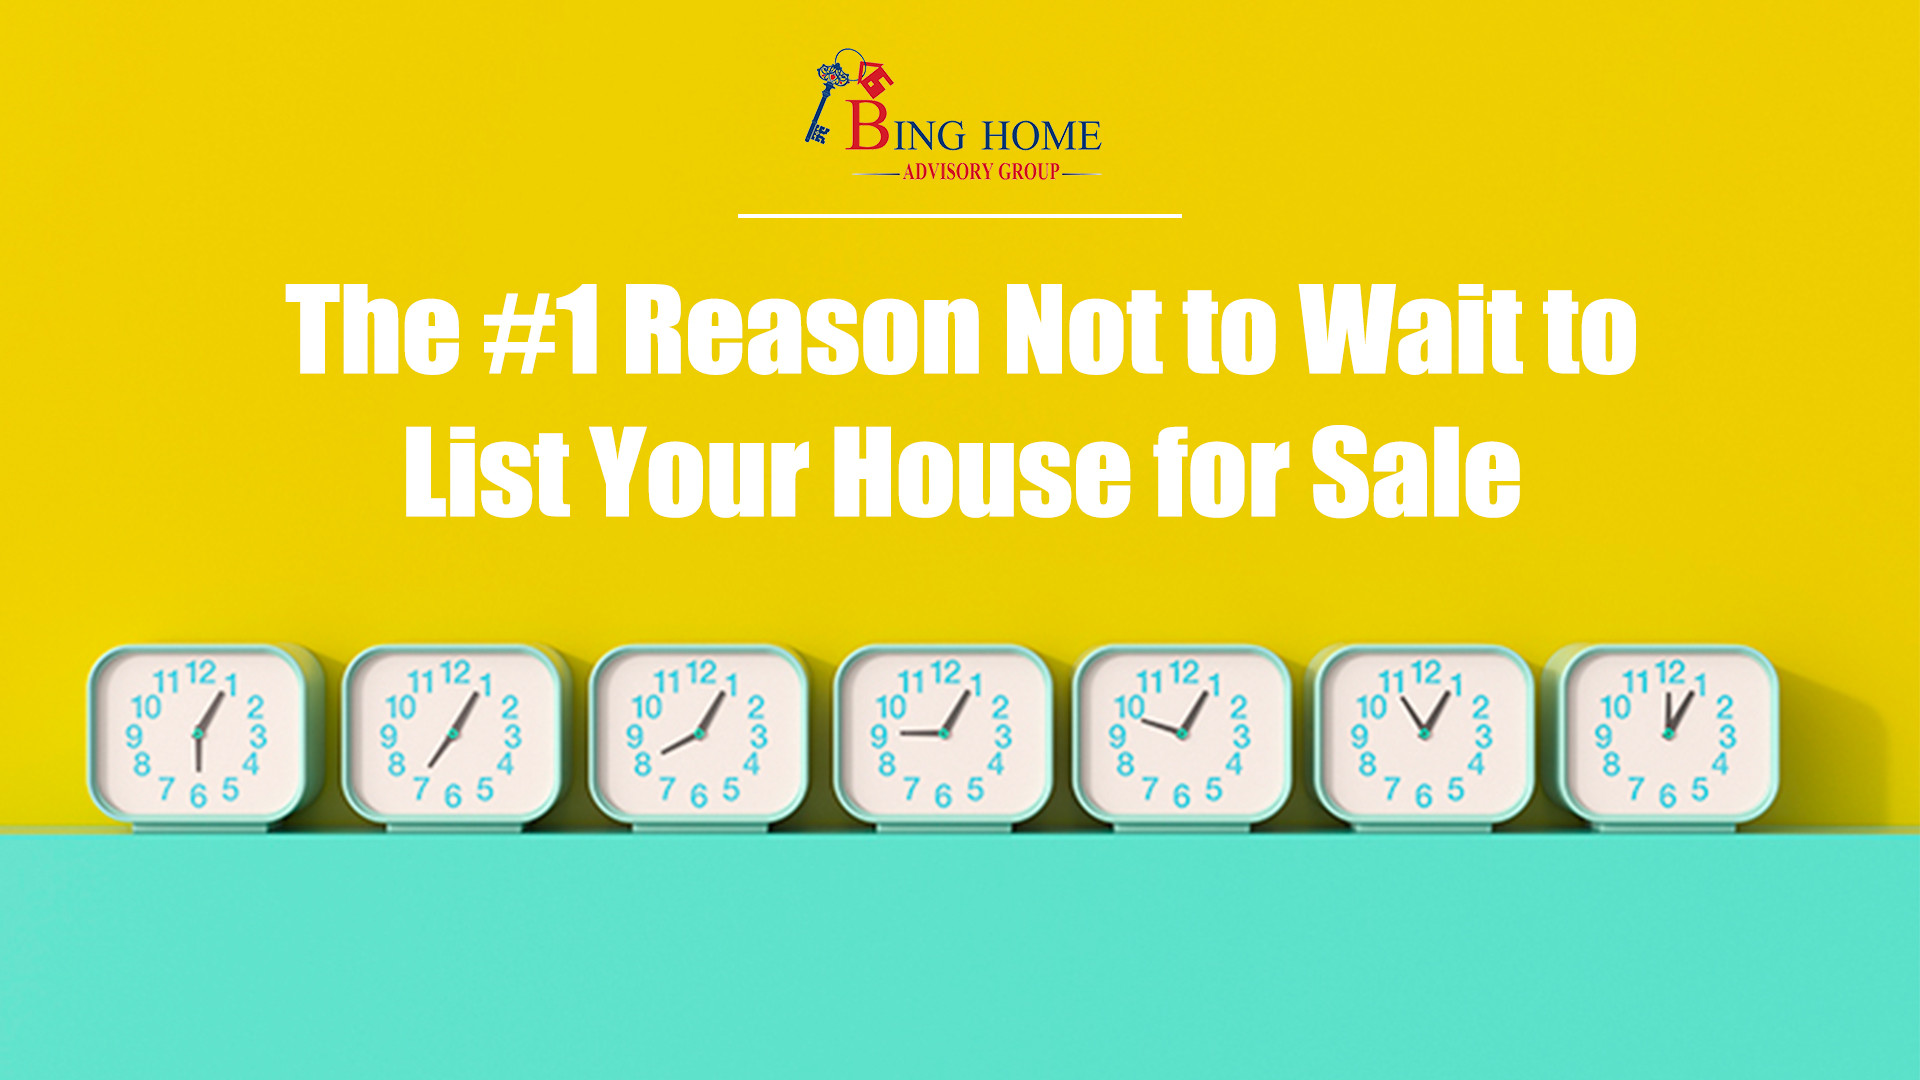 The #1 Reason Not to Wait to List Your House for Sale 16 x 9.jpg